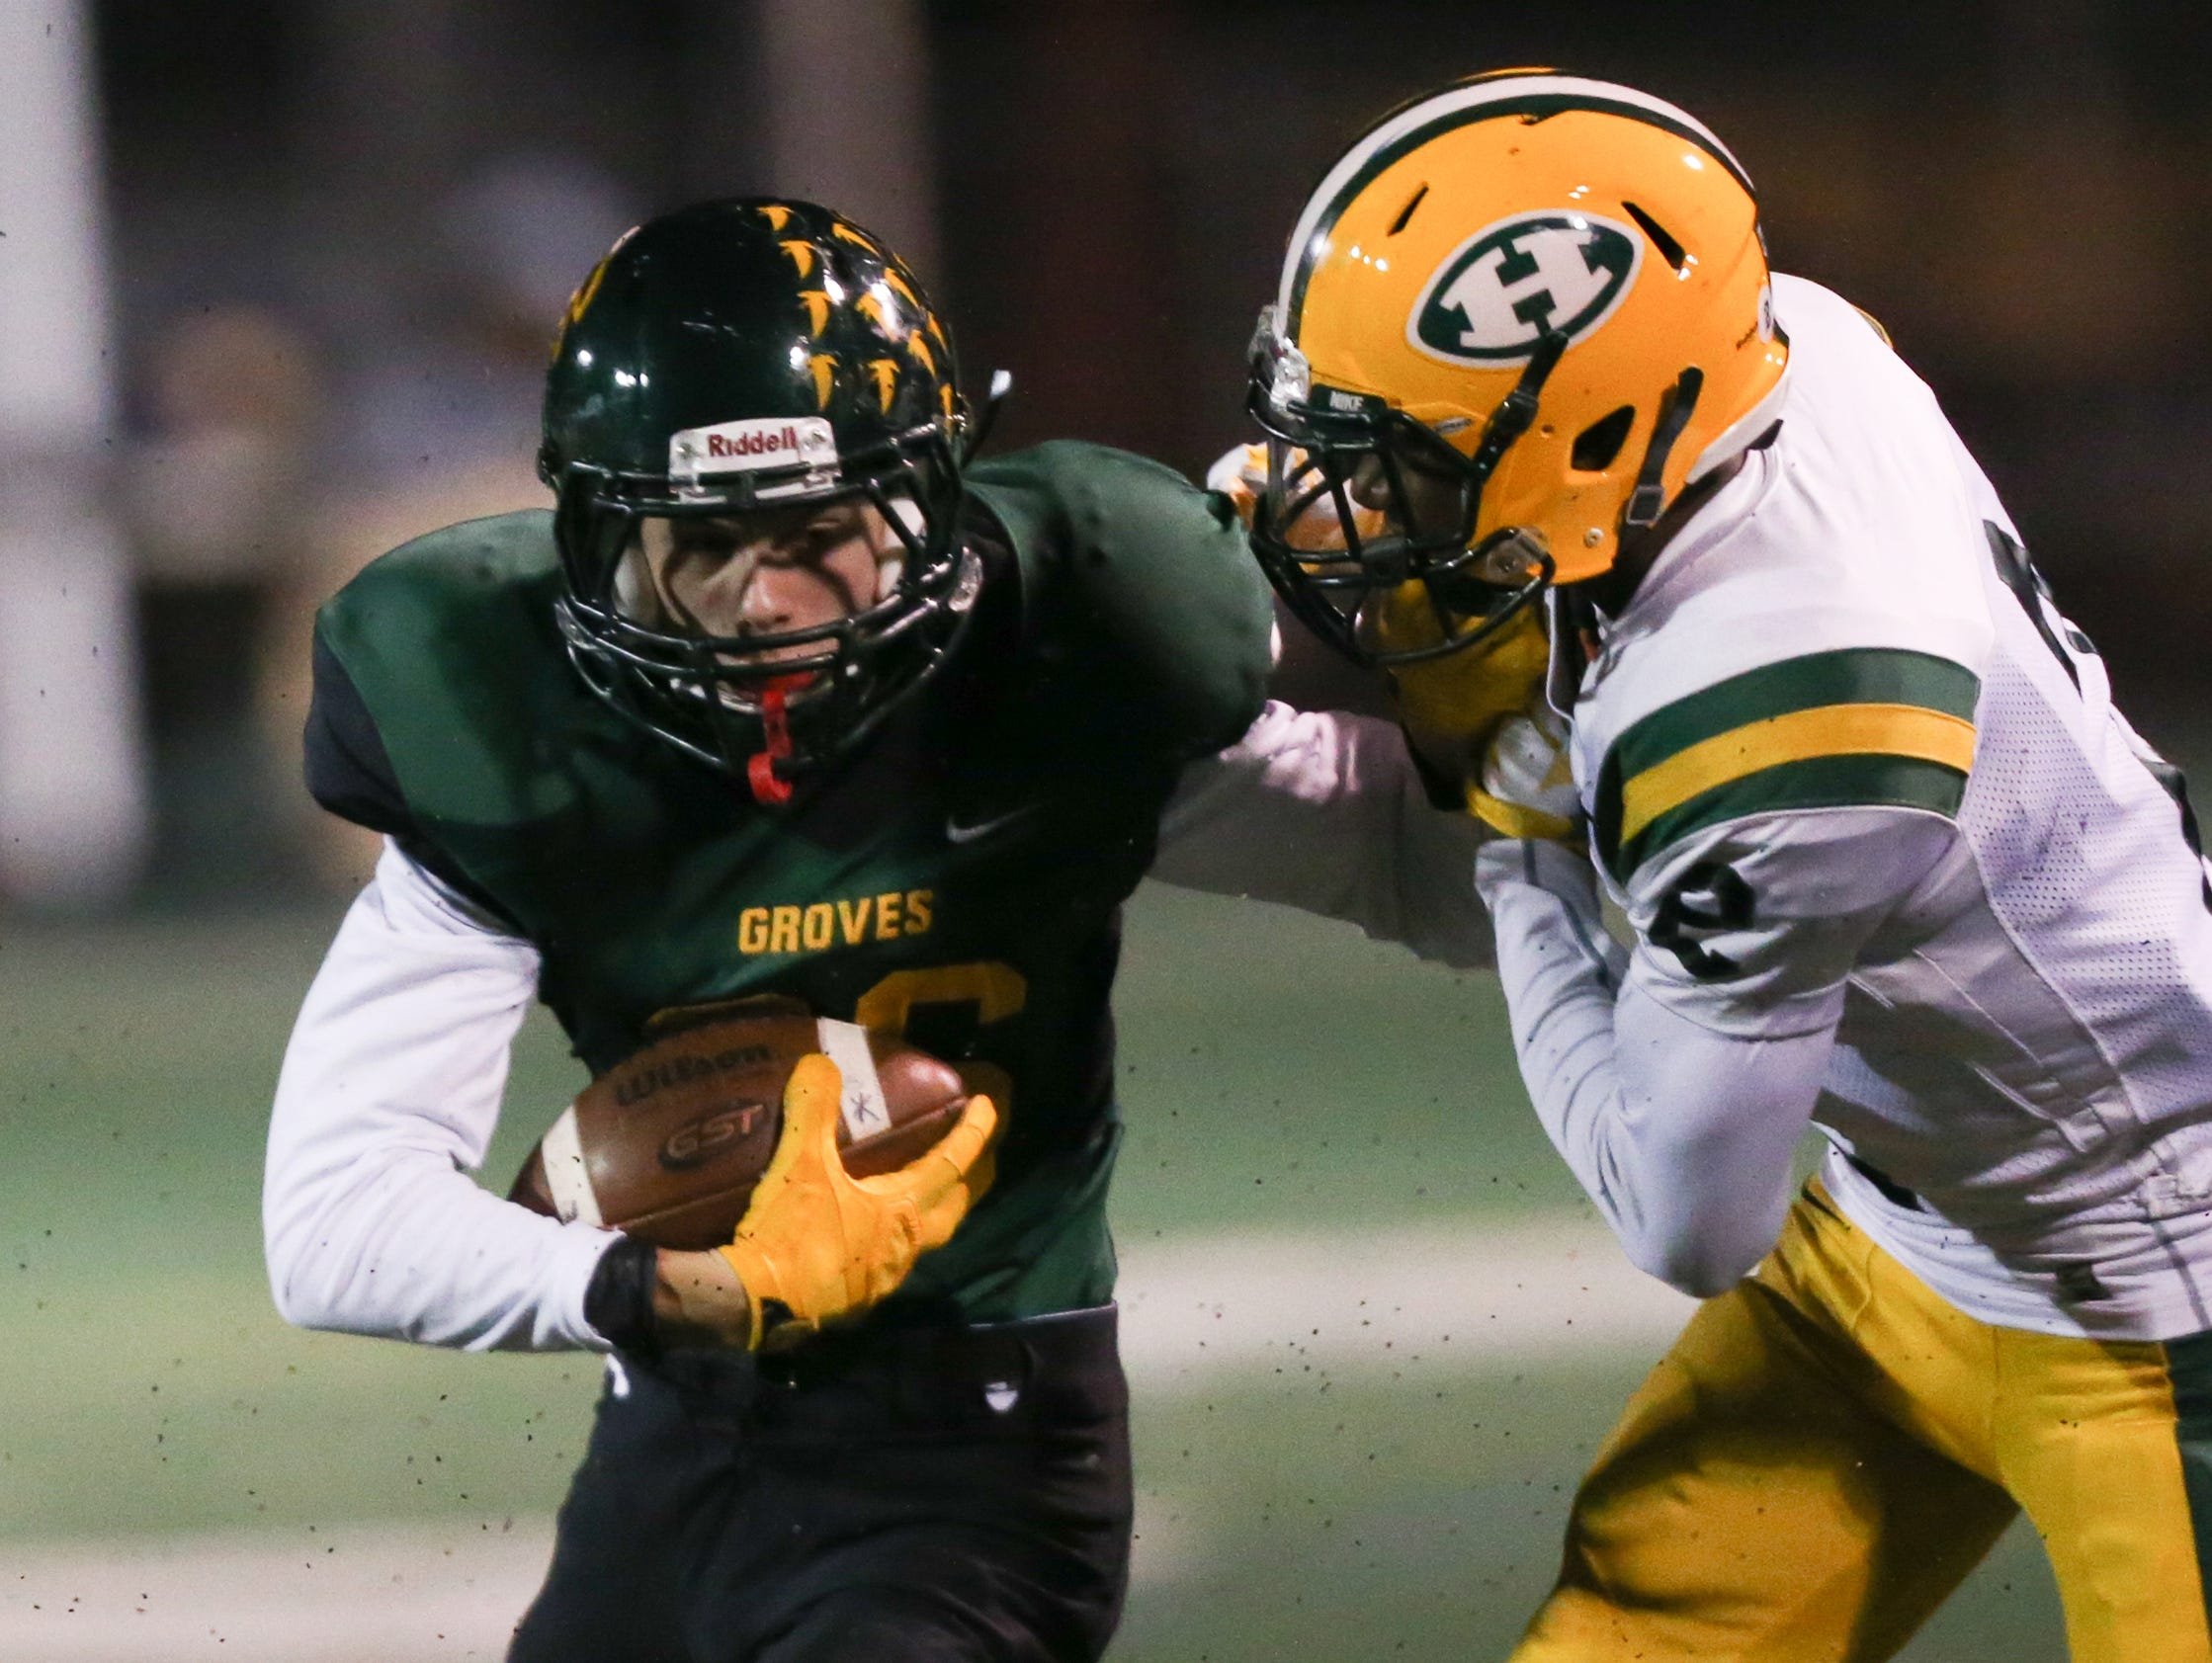 Birmingham Groves high school's Nate Higley is tackled by Farmington Hills Harrison's Kordell Agee during first-half action Friday, October 30, 2015 at Groves high school in Birmingham, Michigan.